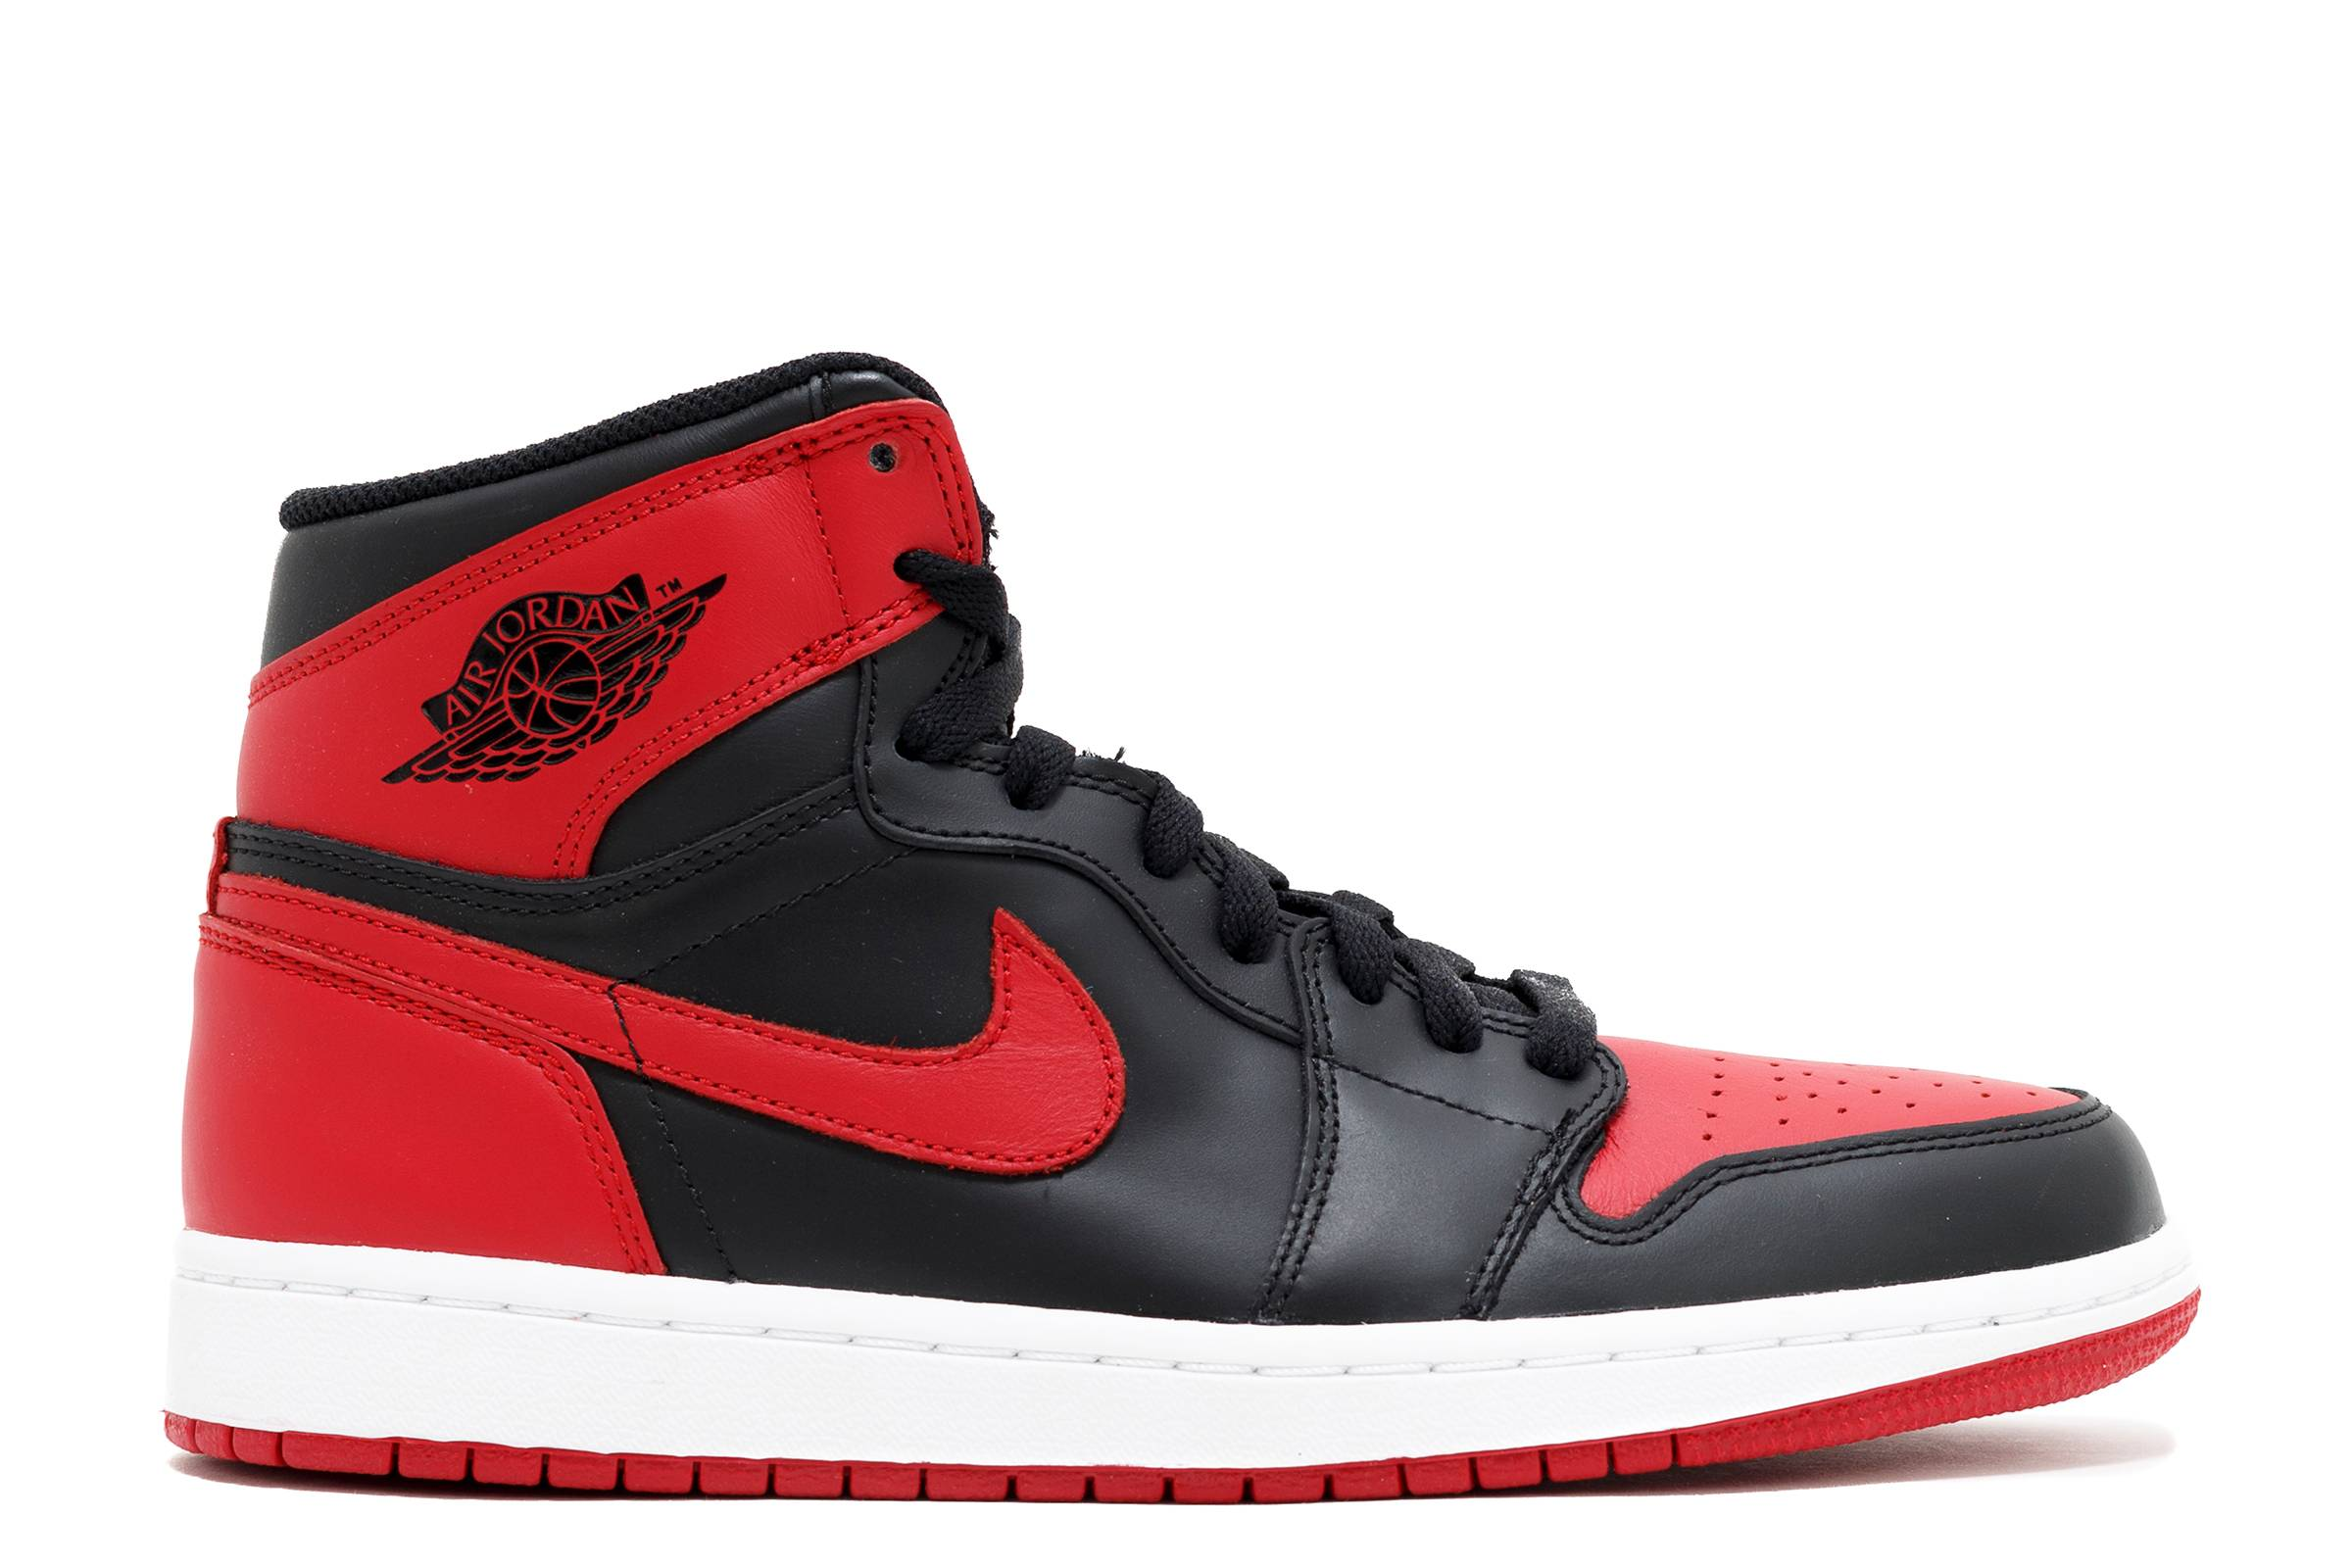 on sale e21f6 1c6a8 The One That Started It All  A History of the Jordan 1